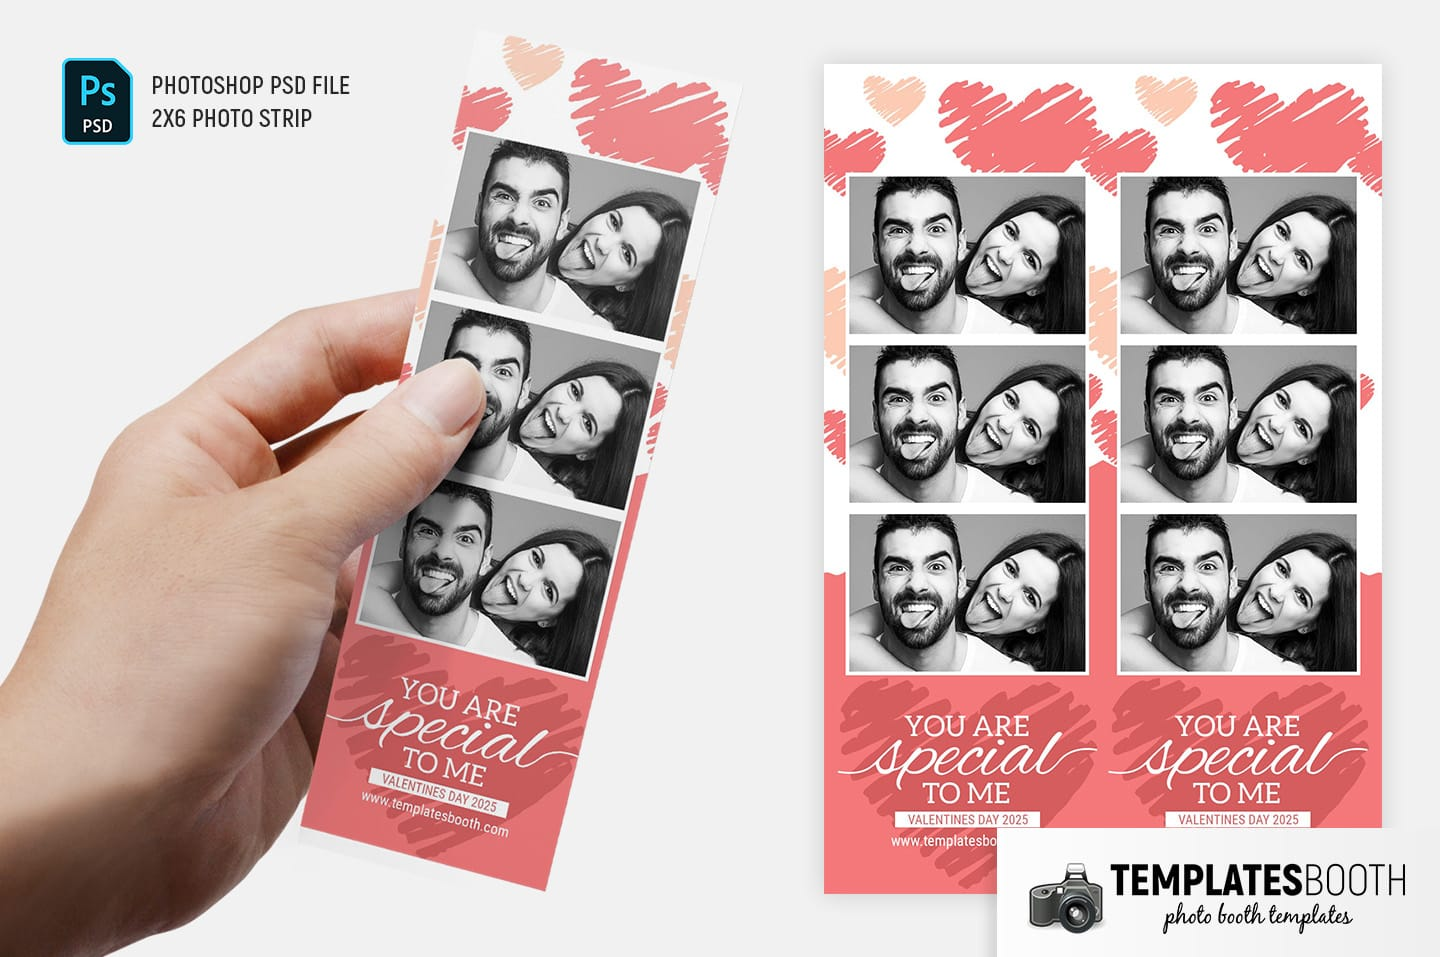 Valentine's Day Photo Booth Template (2x6 photo strip)